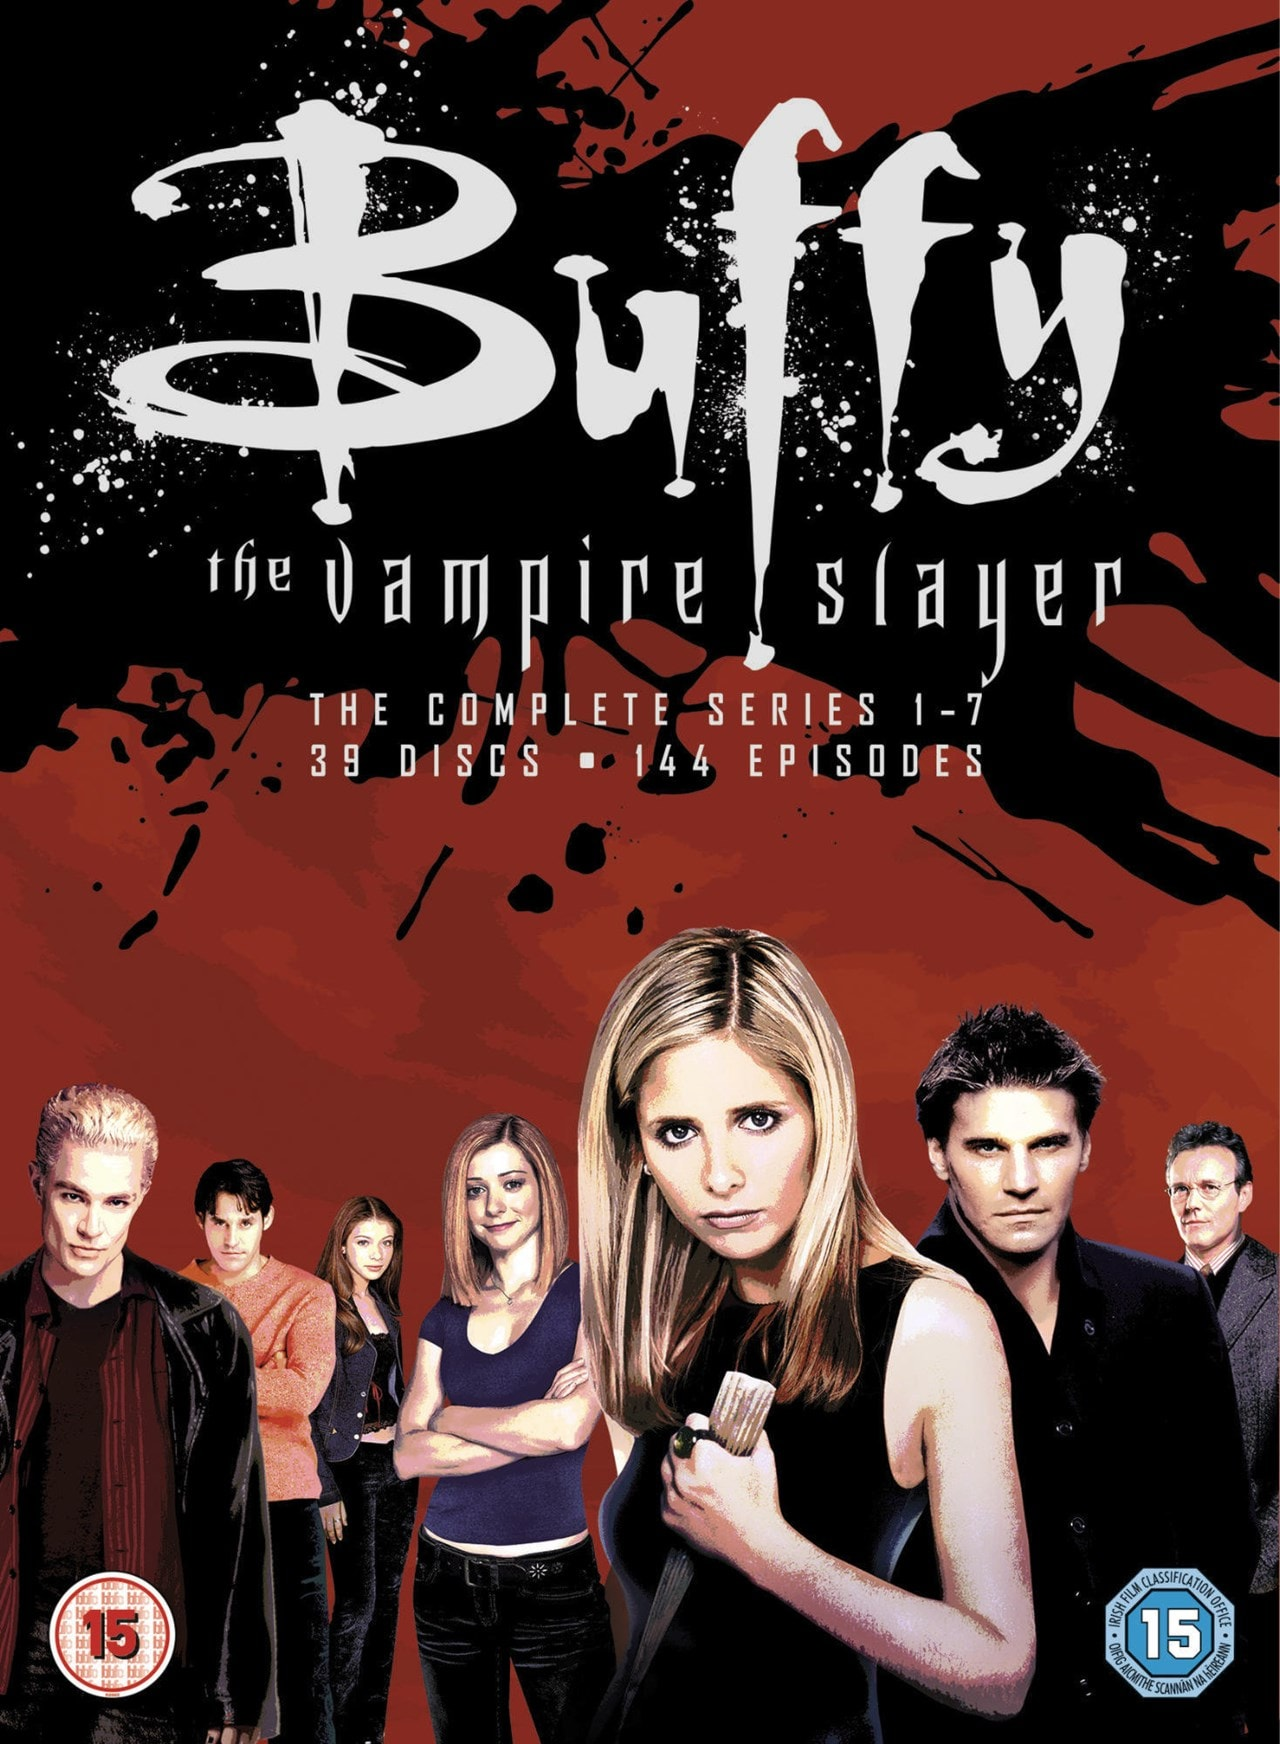 Buffy the Vampire Slayer: The Complete Series - 1